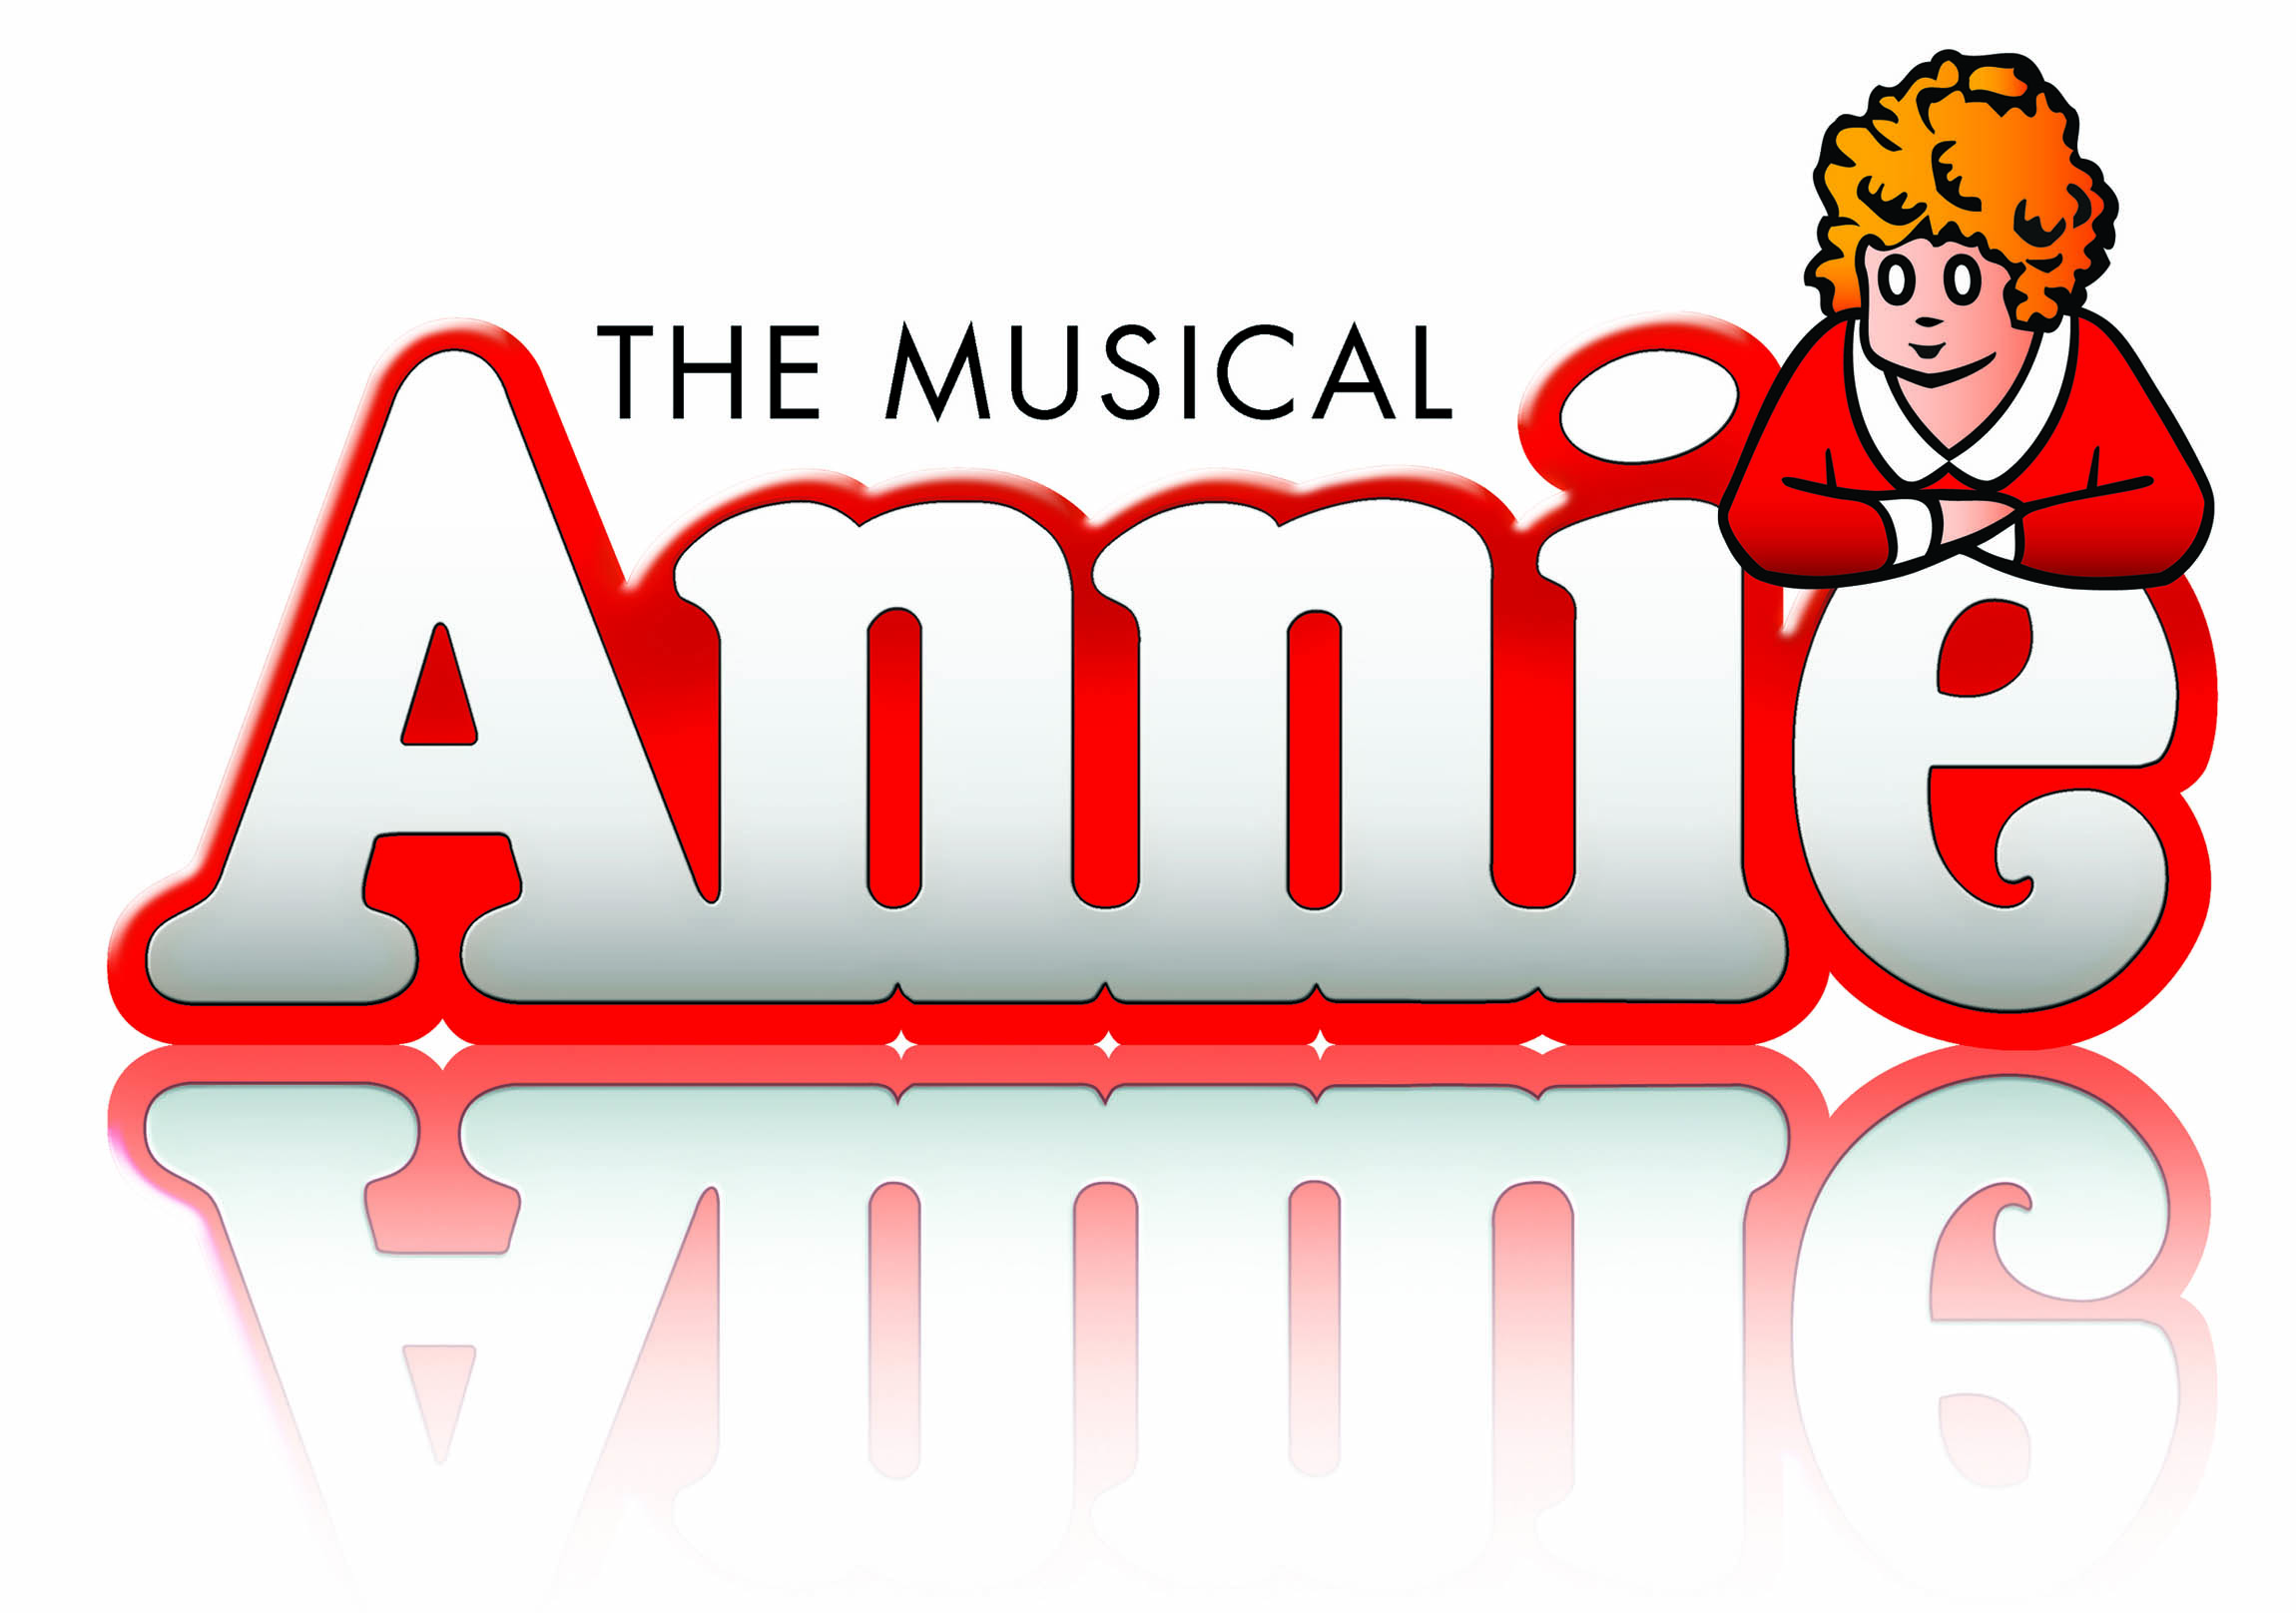 Lyanna Smith, Kenzie Smith, Jerra Johnson, and Jack Tindall - Lyanna Smith (Annie), Kenzie Smith (Pepper), Jerra Johnson (Orphan), Maddie Graham (Orphan), and Jack Tindall (Ensemble) are in the Marietta College production of Annie, April 6-8 and 14. More info here.